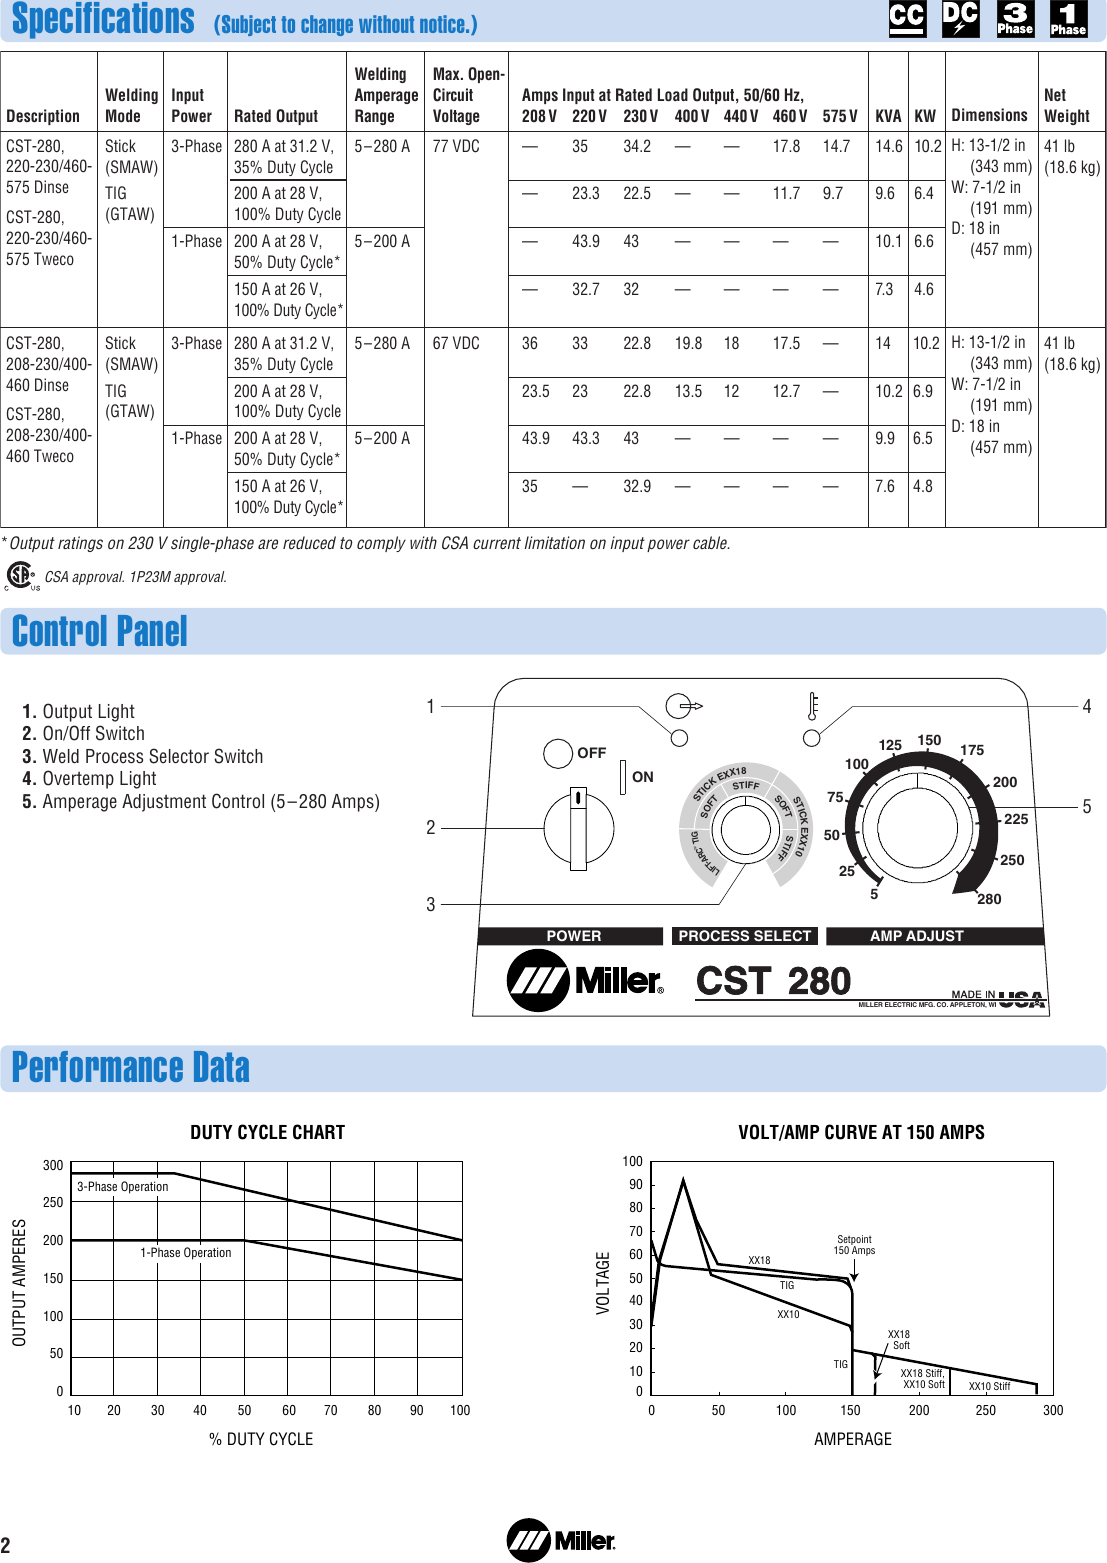 Miller Cst 280 Wiring Diagram from usermanual.wiki